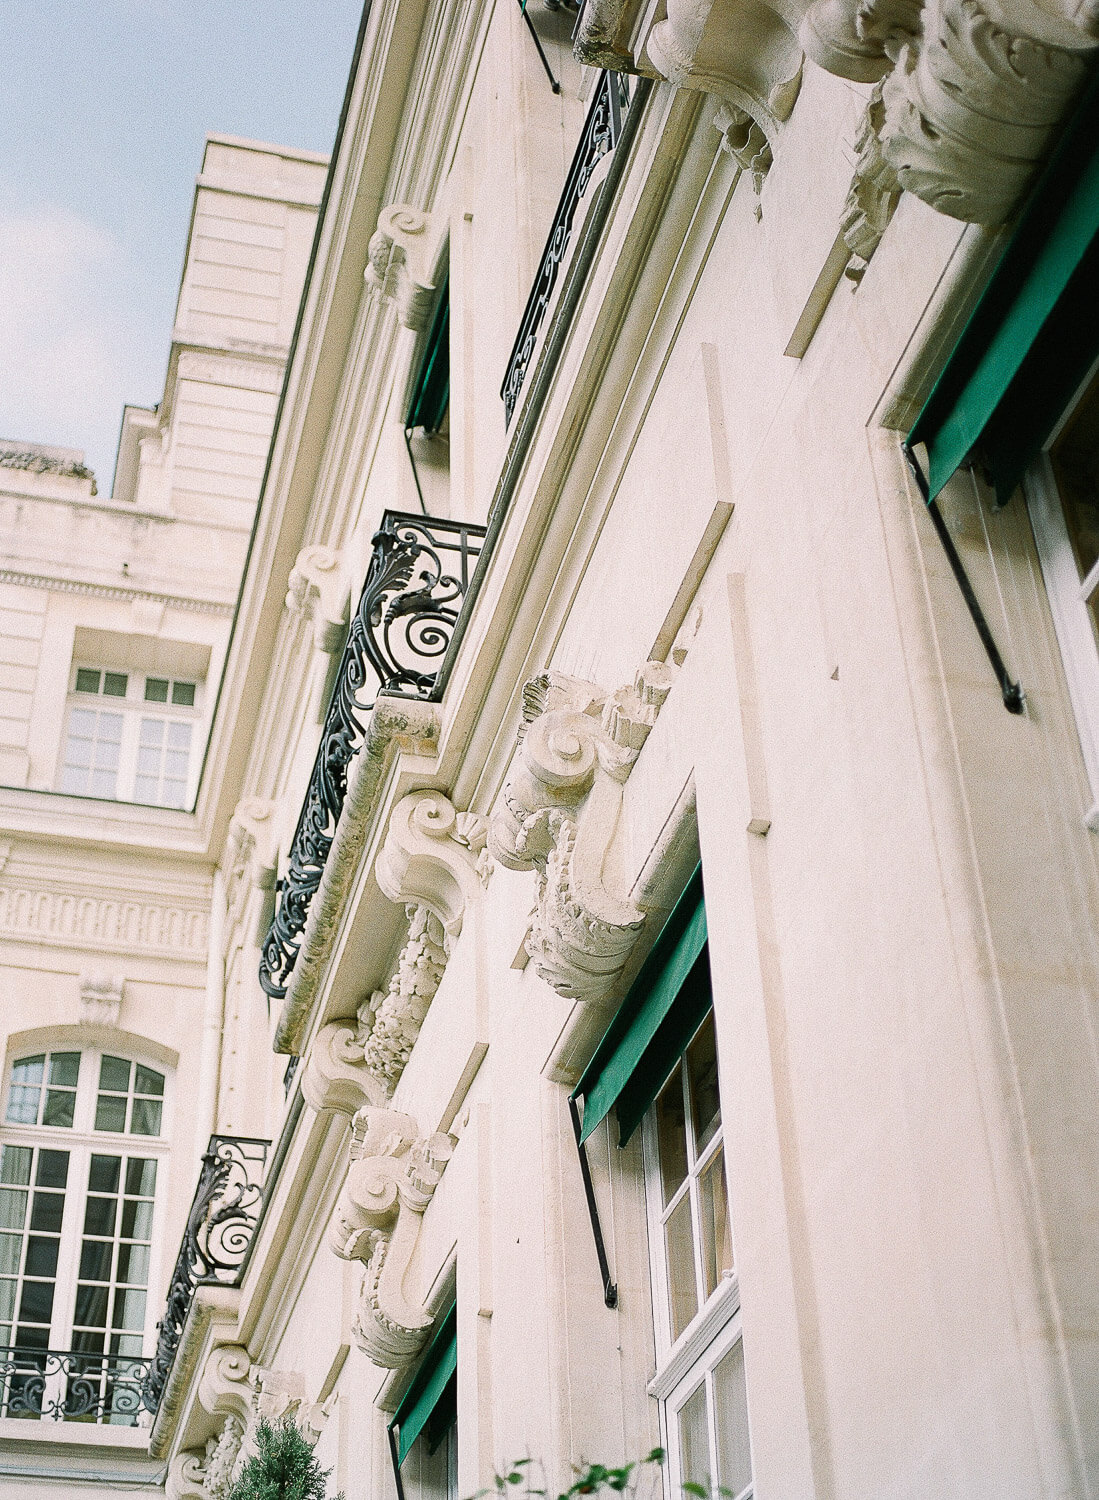 Paris Palace facade with green awnings by Portugal Wedding Photographer